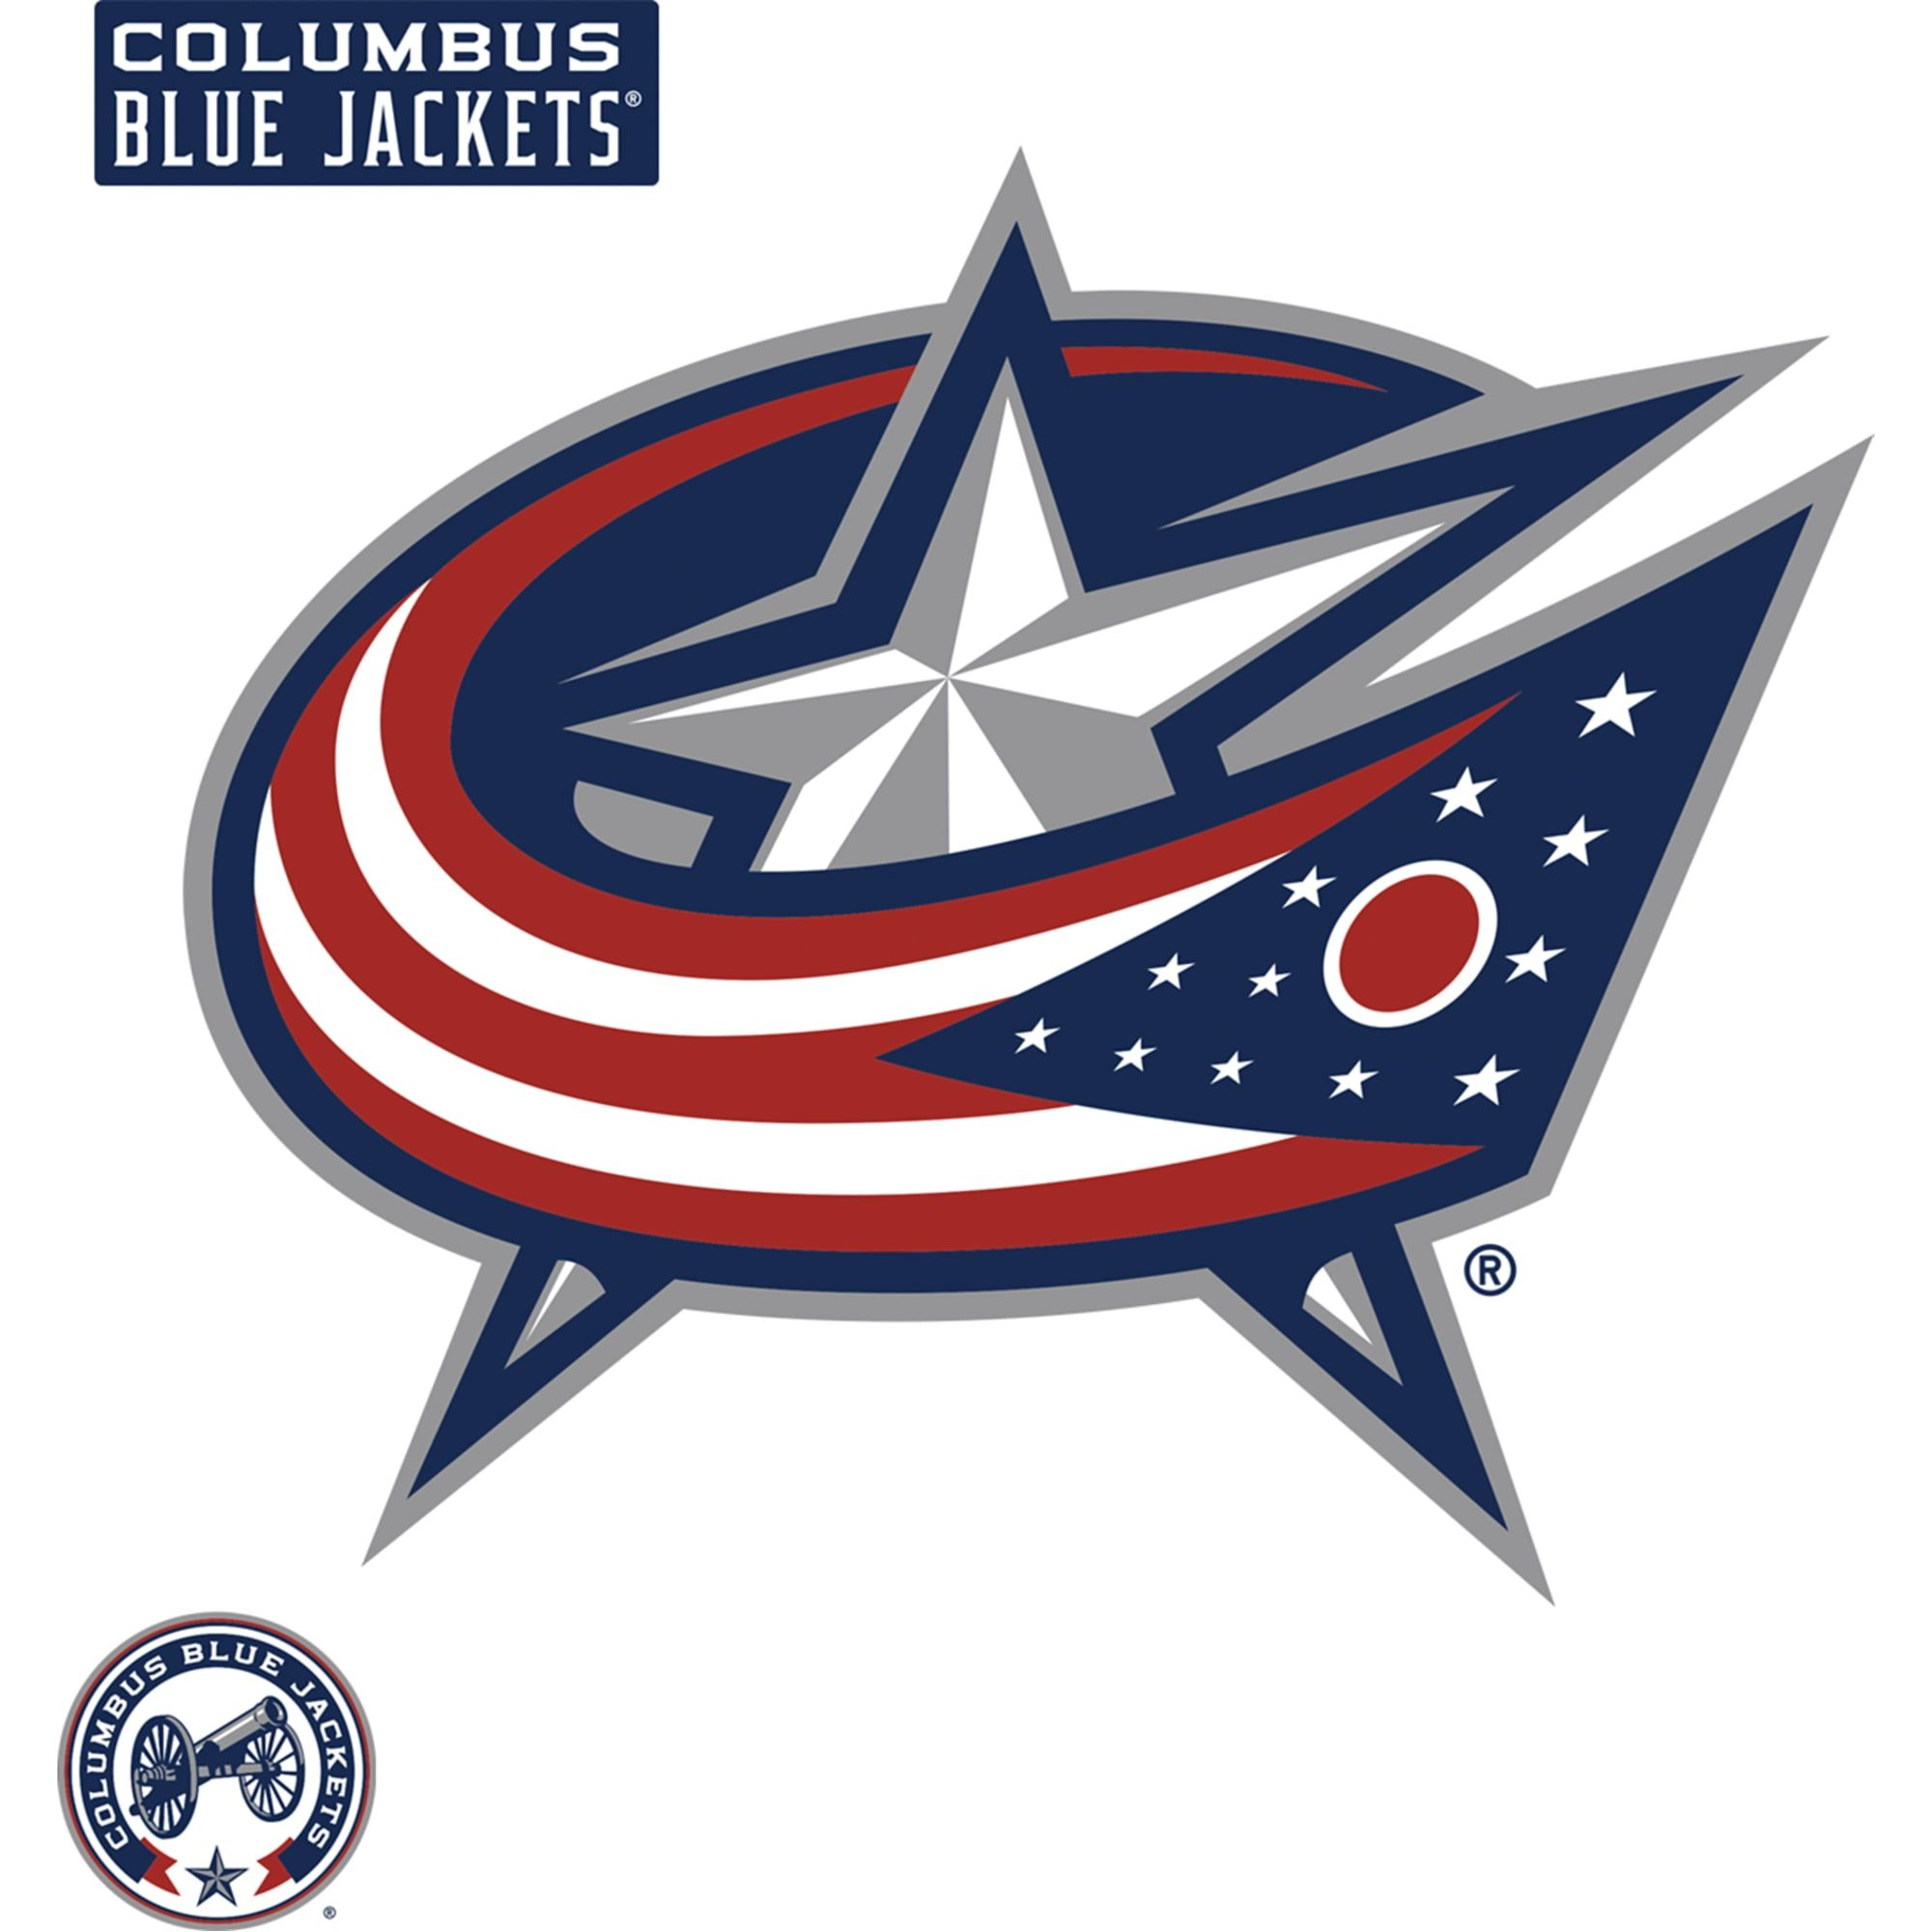 Columbus Blue Jackets Logo Large Officially Licensed Nhl Removable Wall Decal Columbus Blue Jackets Hockey Logos Logos